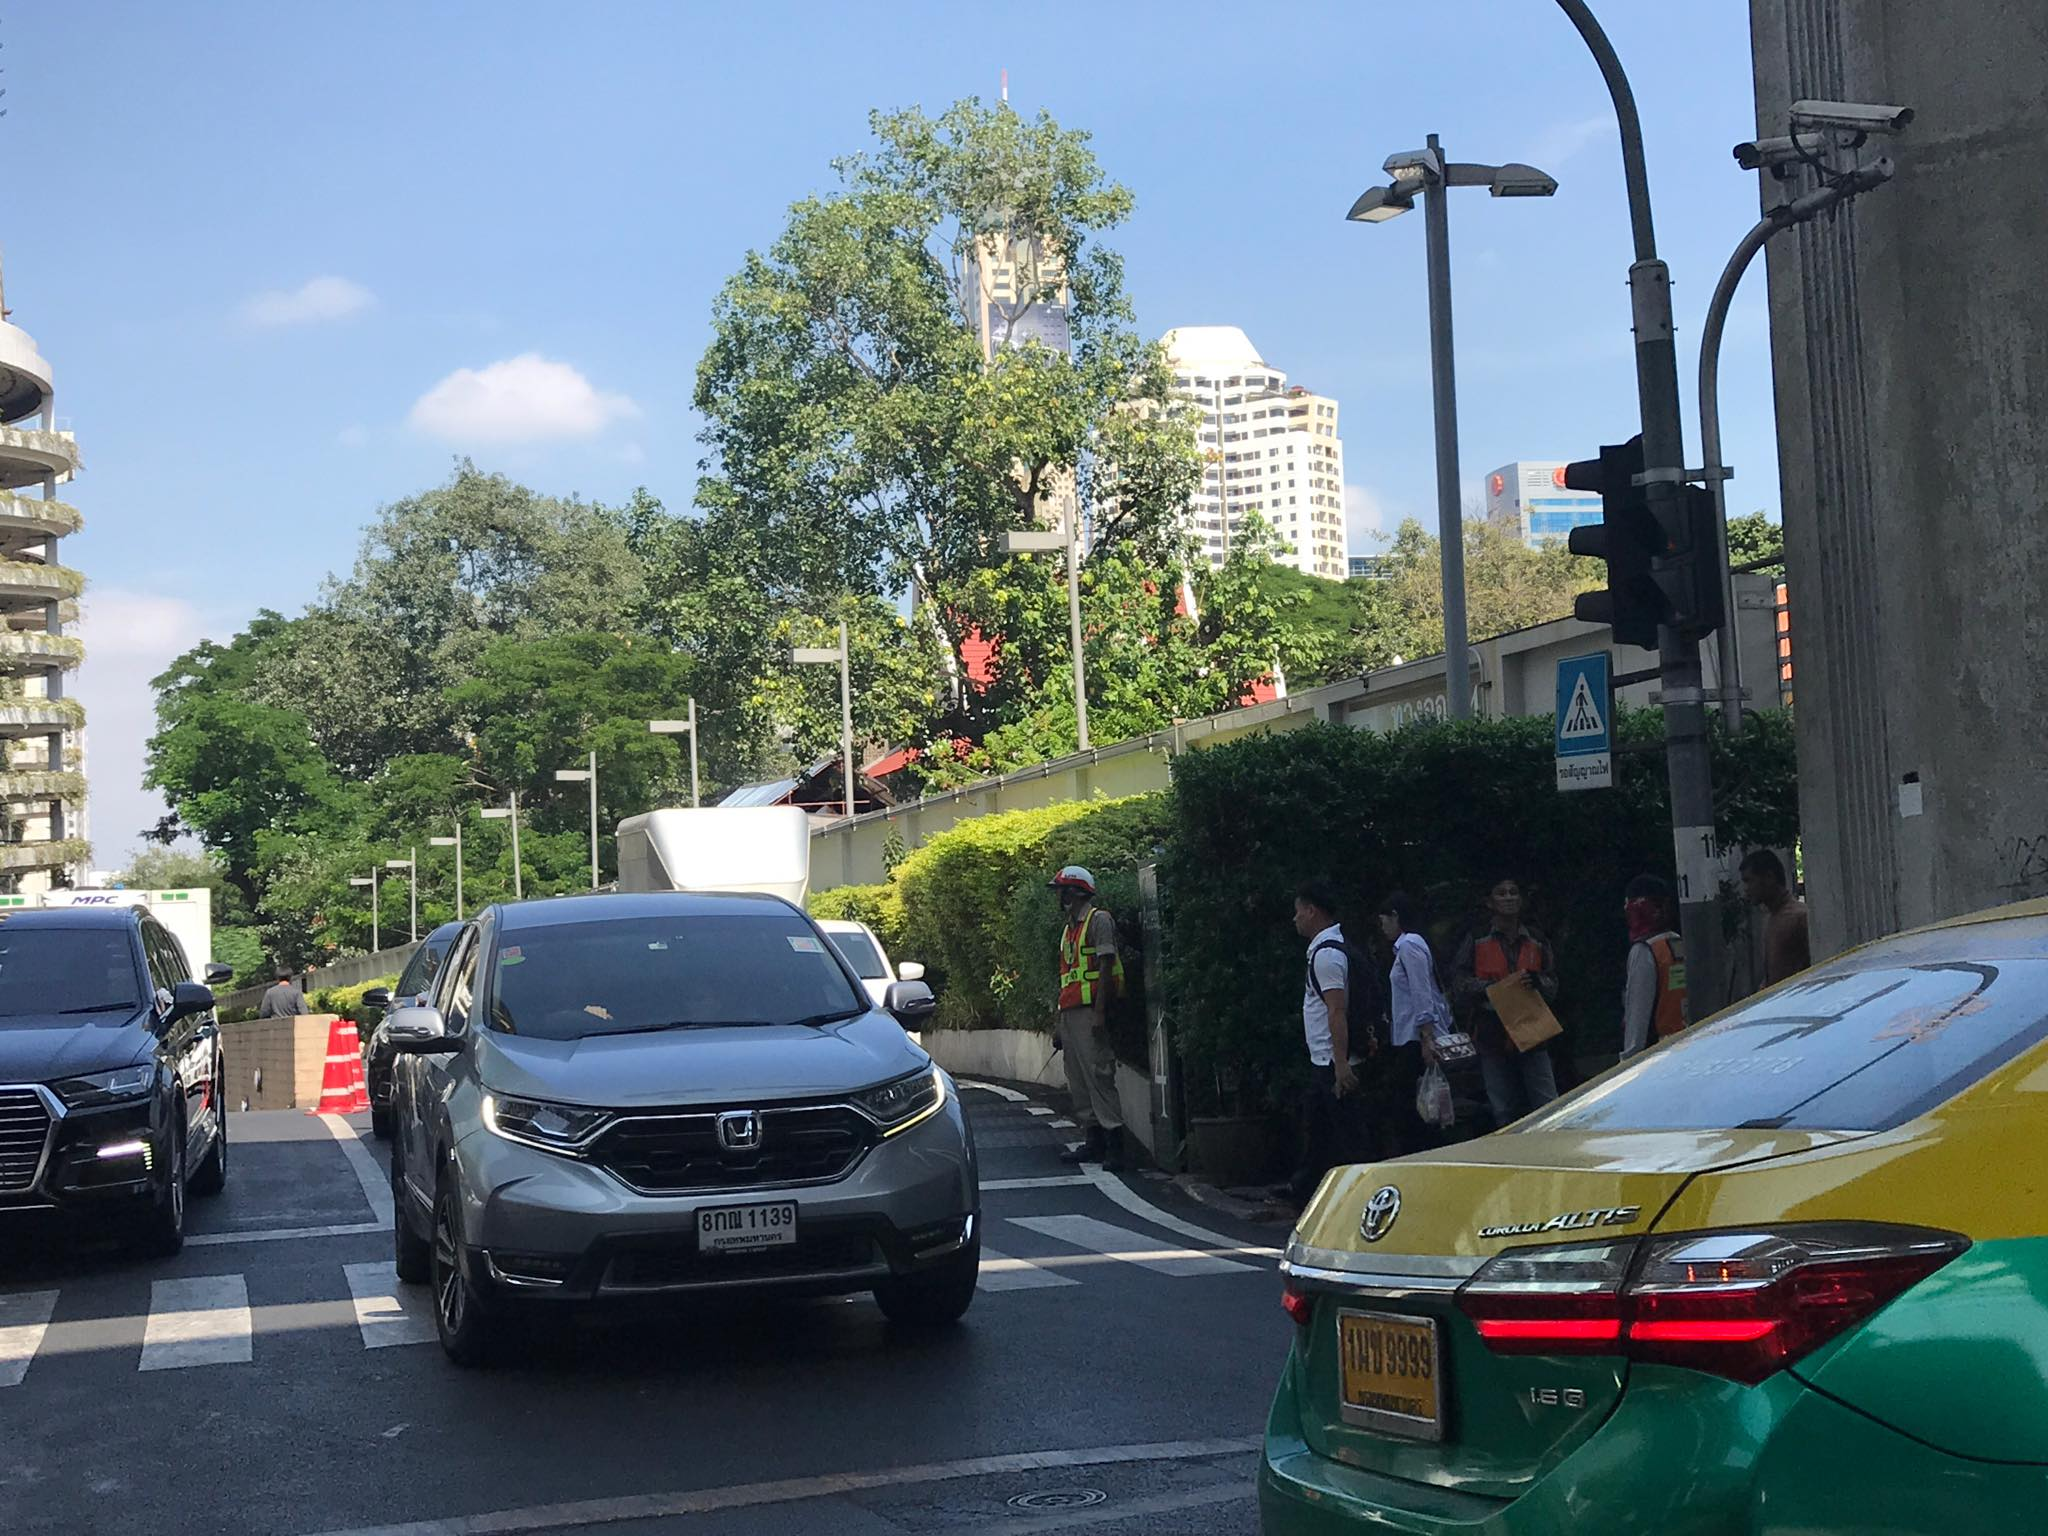 The spot in front of Siam Paragon where Arielle Struhl alleges the motorcycle taxis crossed from to harass her for using a Grab bike. Photo: Arielle Struhl / Courtesy